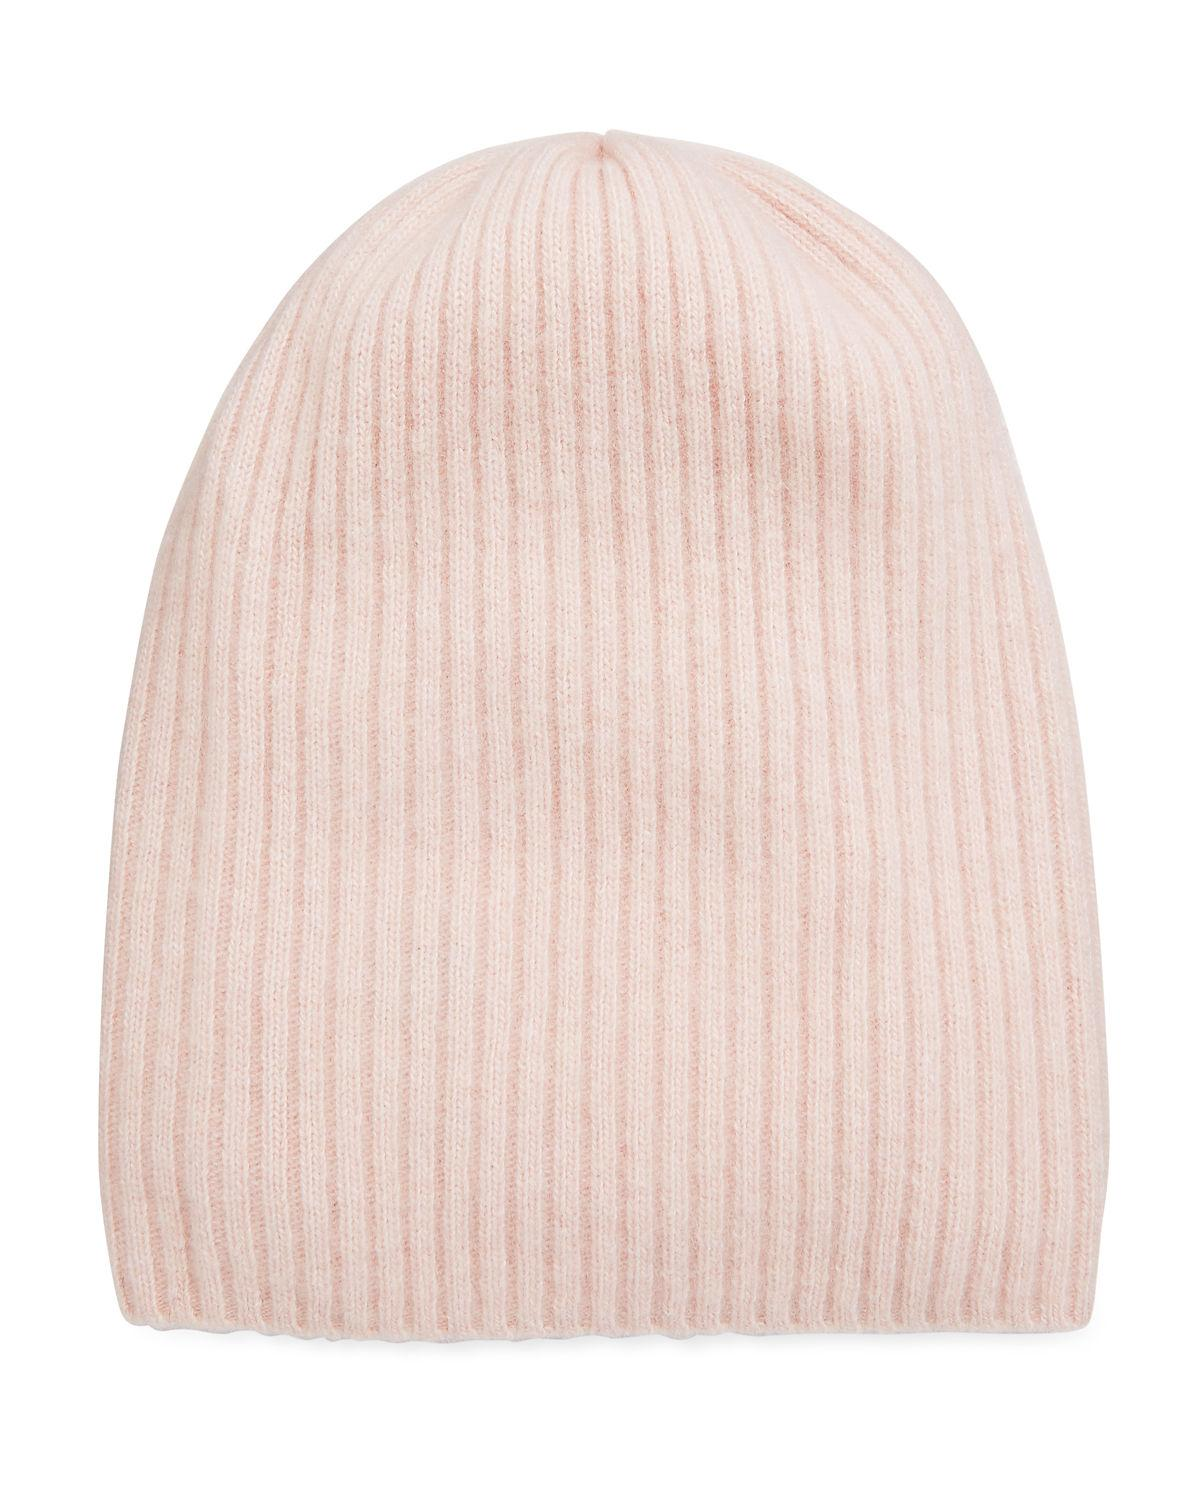 909a49c4ef7 Portolano Cashmere Ribbed Slouchy Beanie In Rose Coral